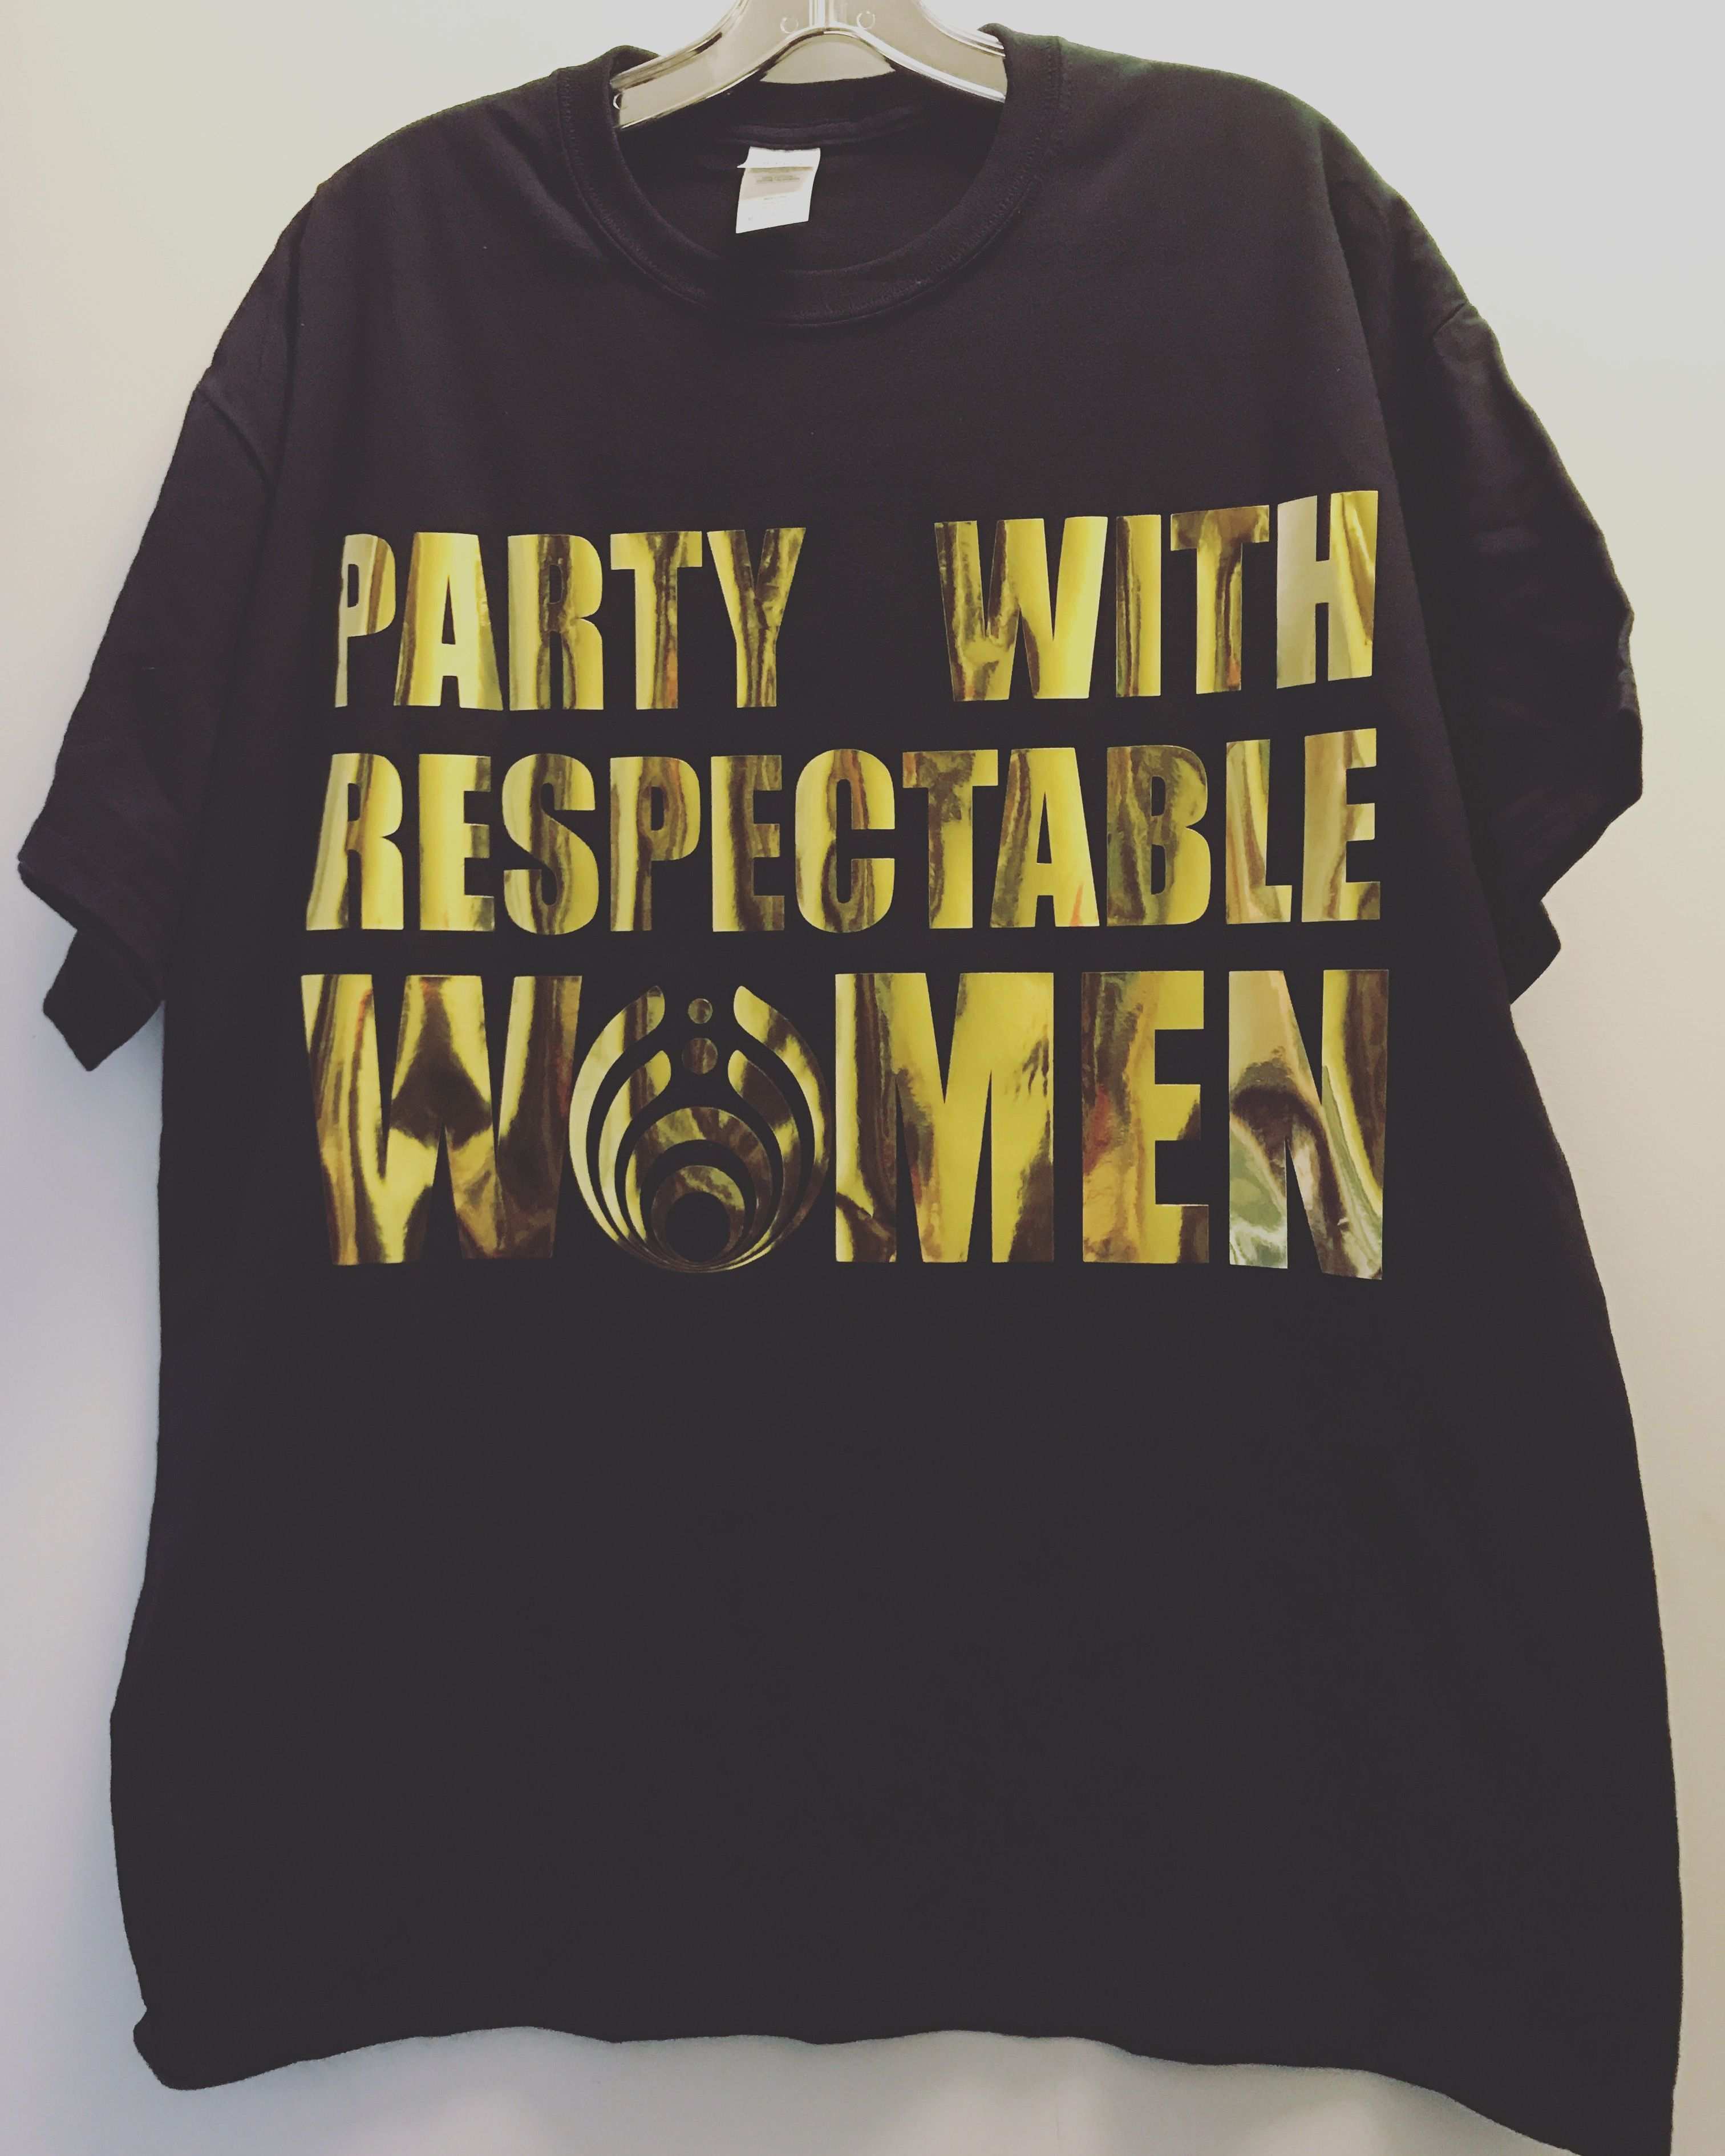 Party With Respectable Women Bassnectar Tshirt Rave clothing Edm ...